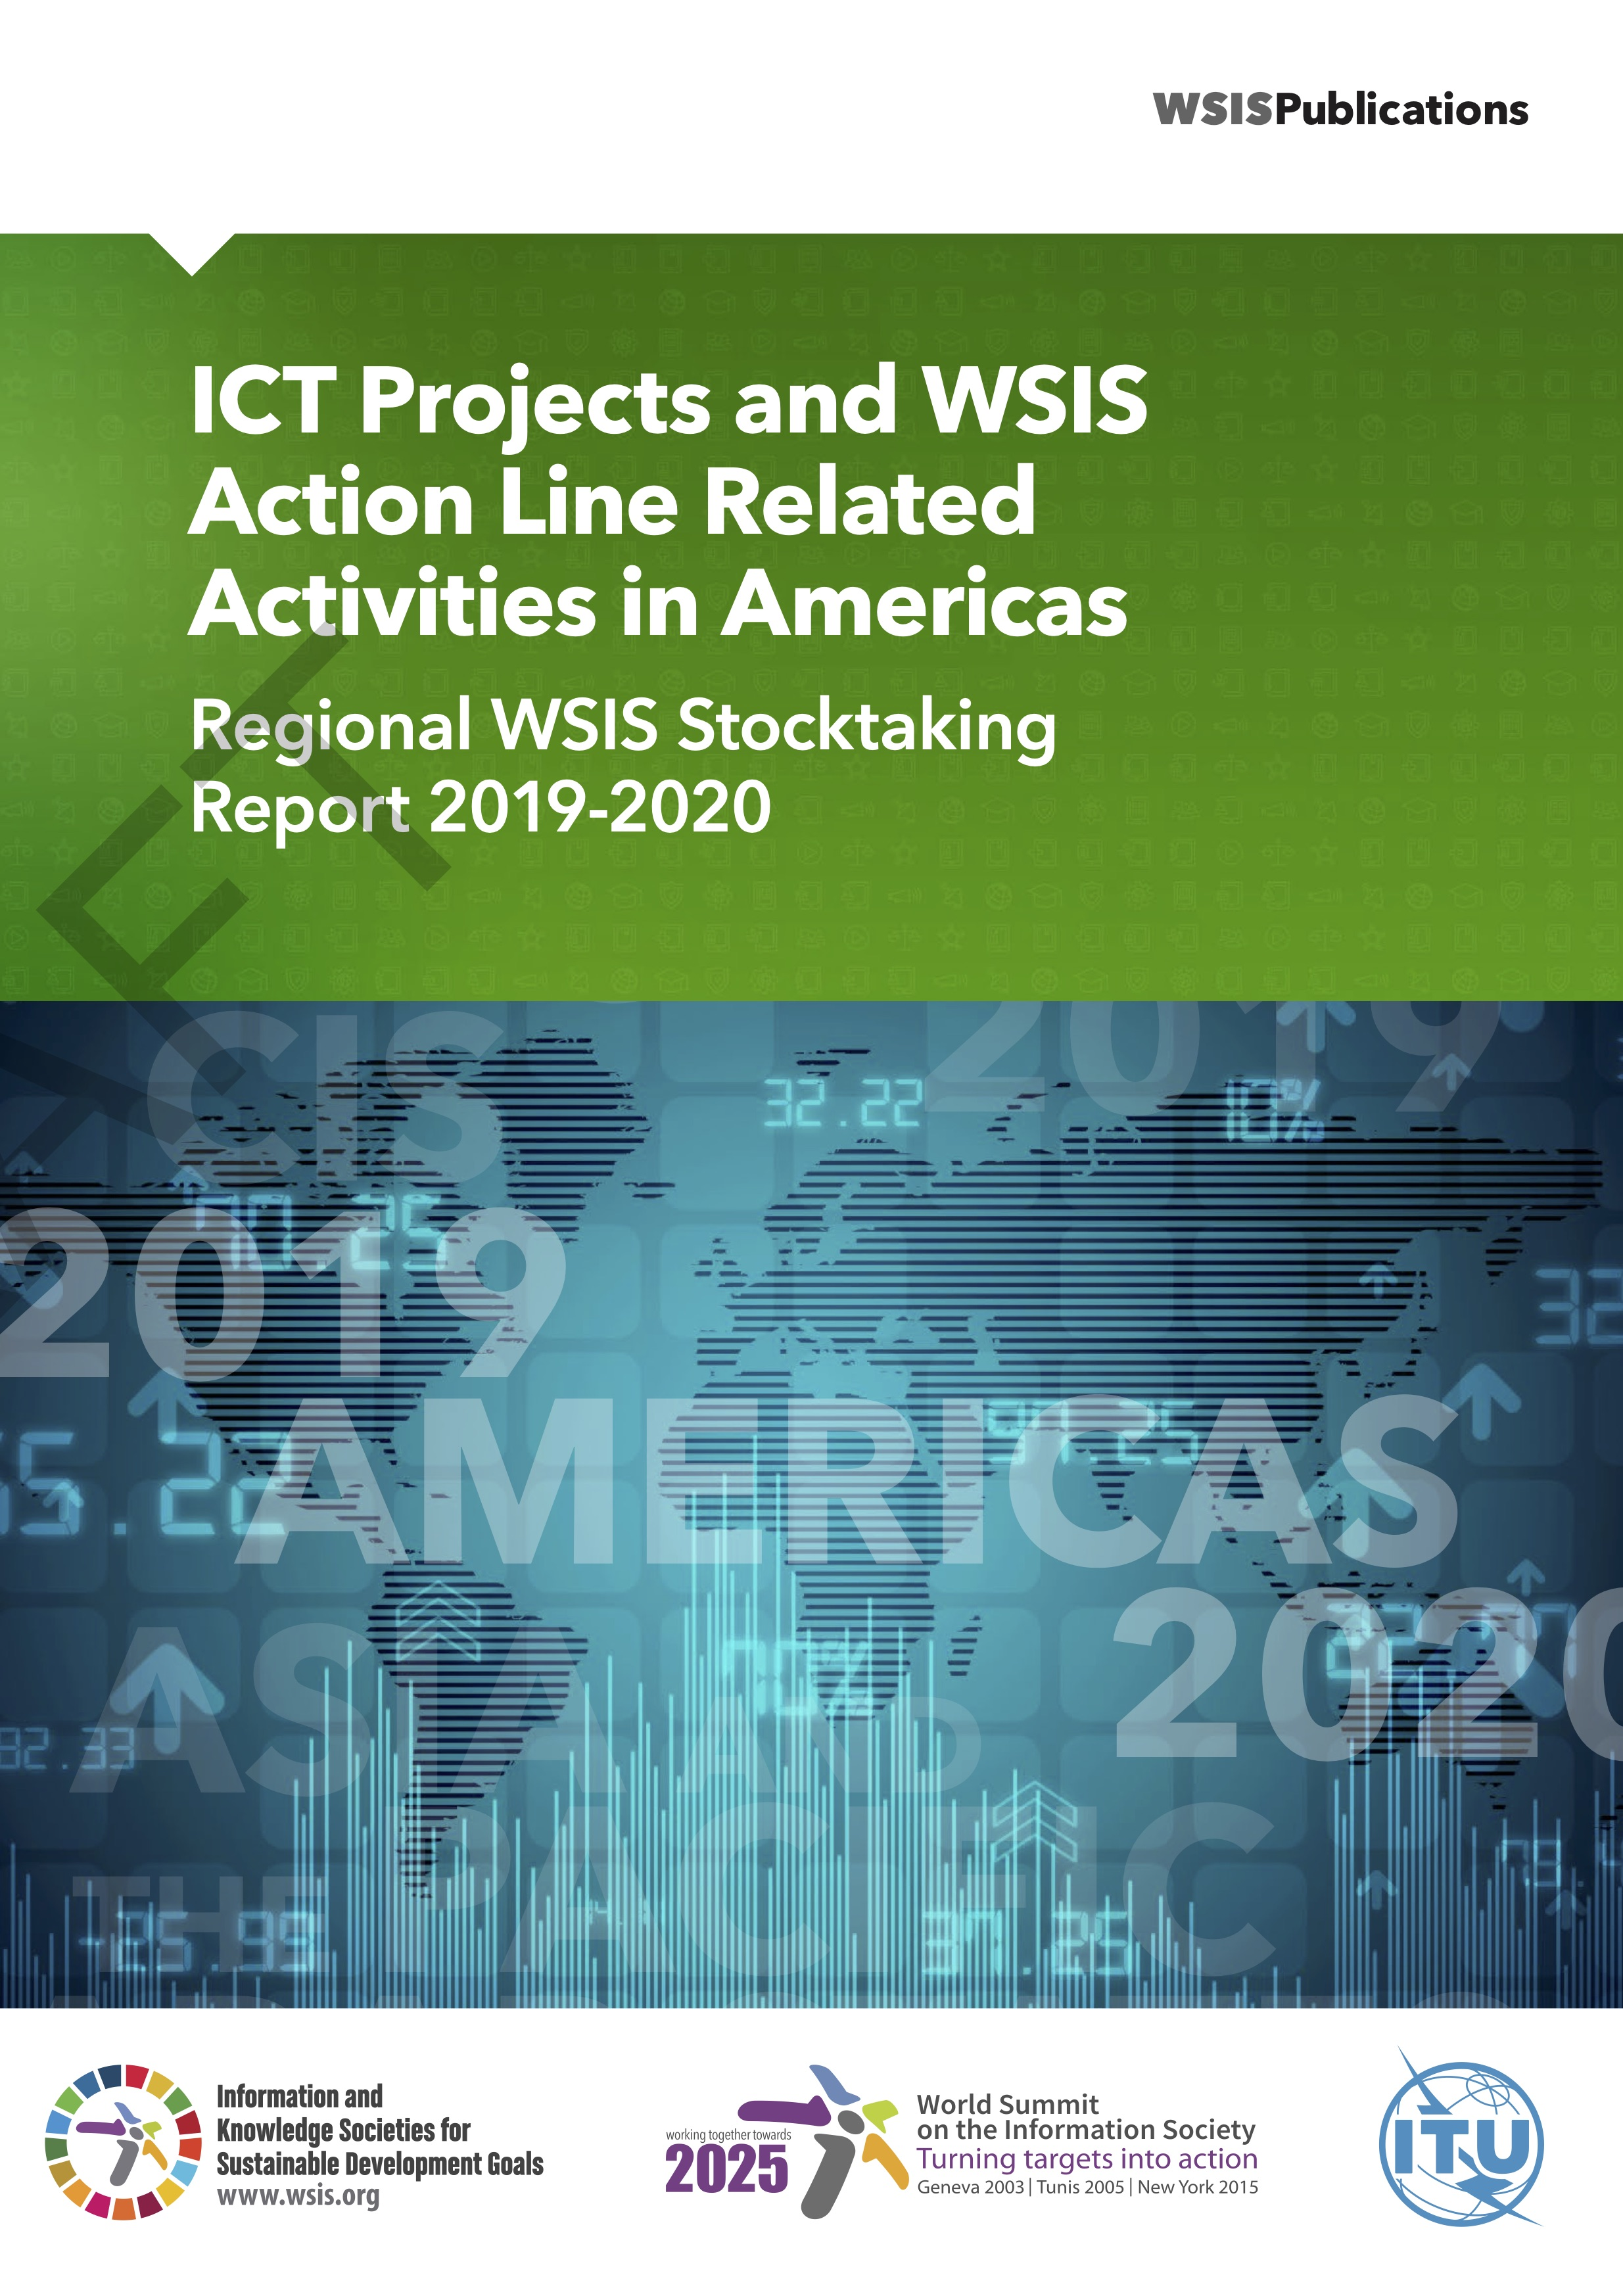 Regional WSIS Stocktaking Report 2019-2020 — Americas